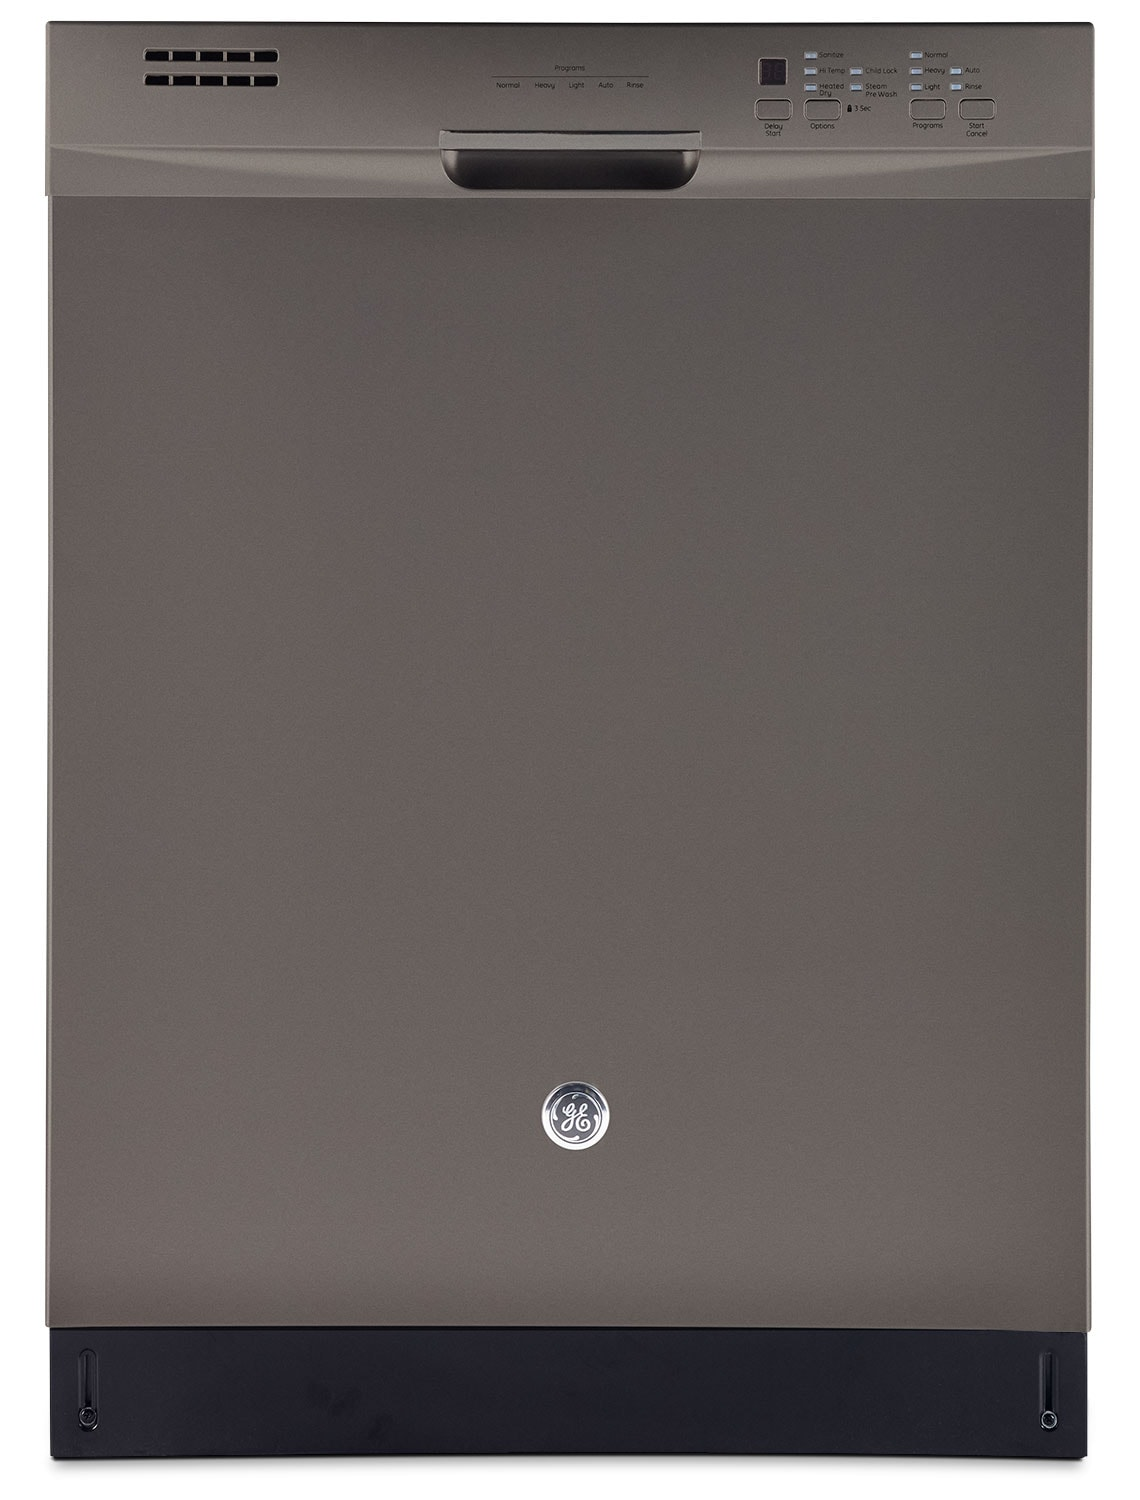 Clean-Up - GE Tall-Tub Built-In Dishwasher with Front Controls – GDF630SSKES